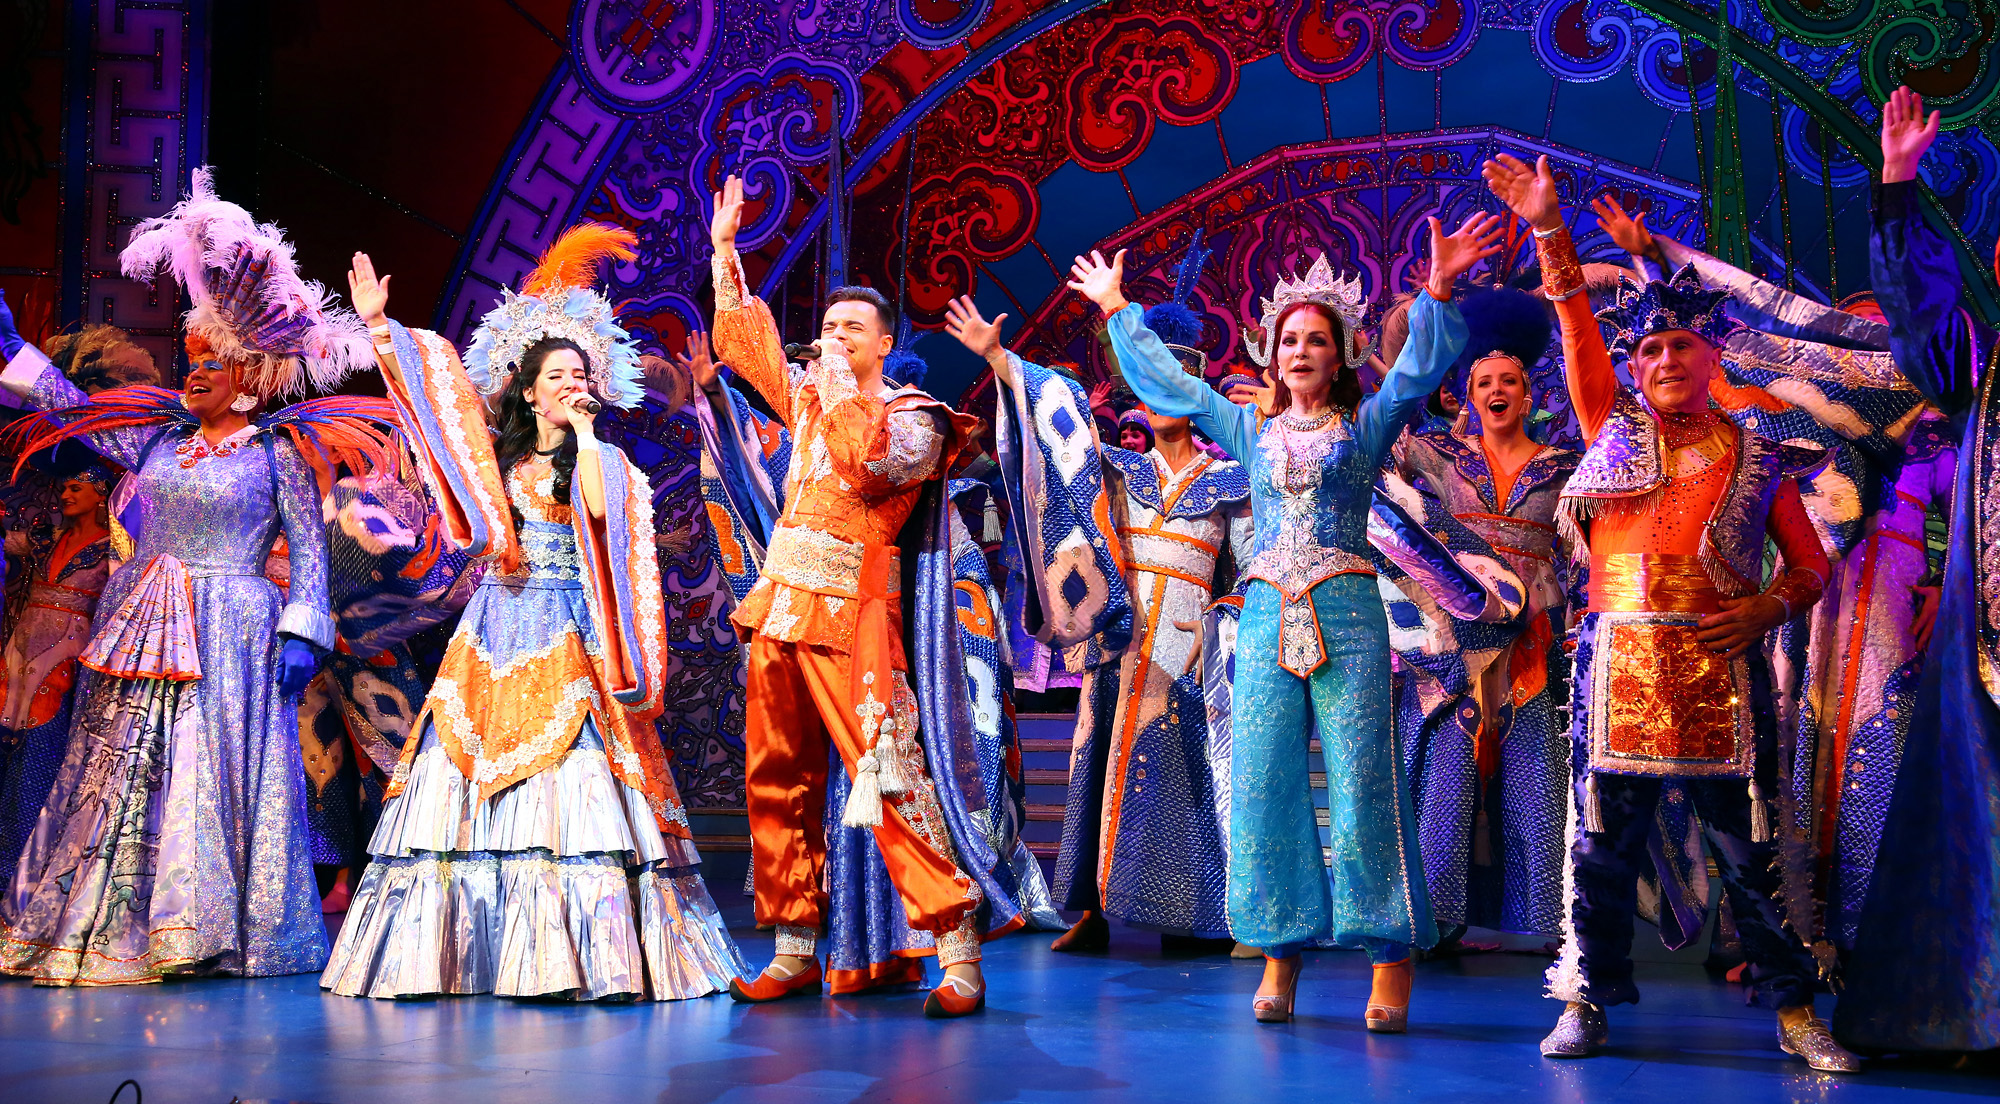 Milton Keynes Theatre presents Aladdin with Priscilla Presley Gary Wilmot Ben Adams Wayne Sleep Kev Orkian Mark Pickering Aimie Atkinson and Phil Holden